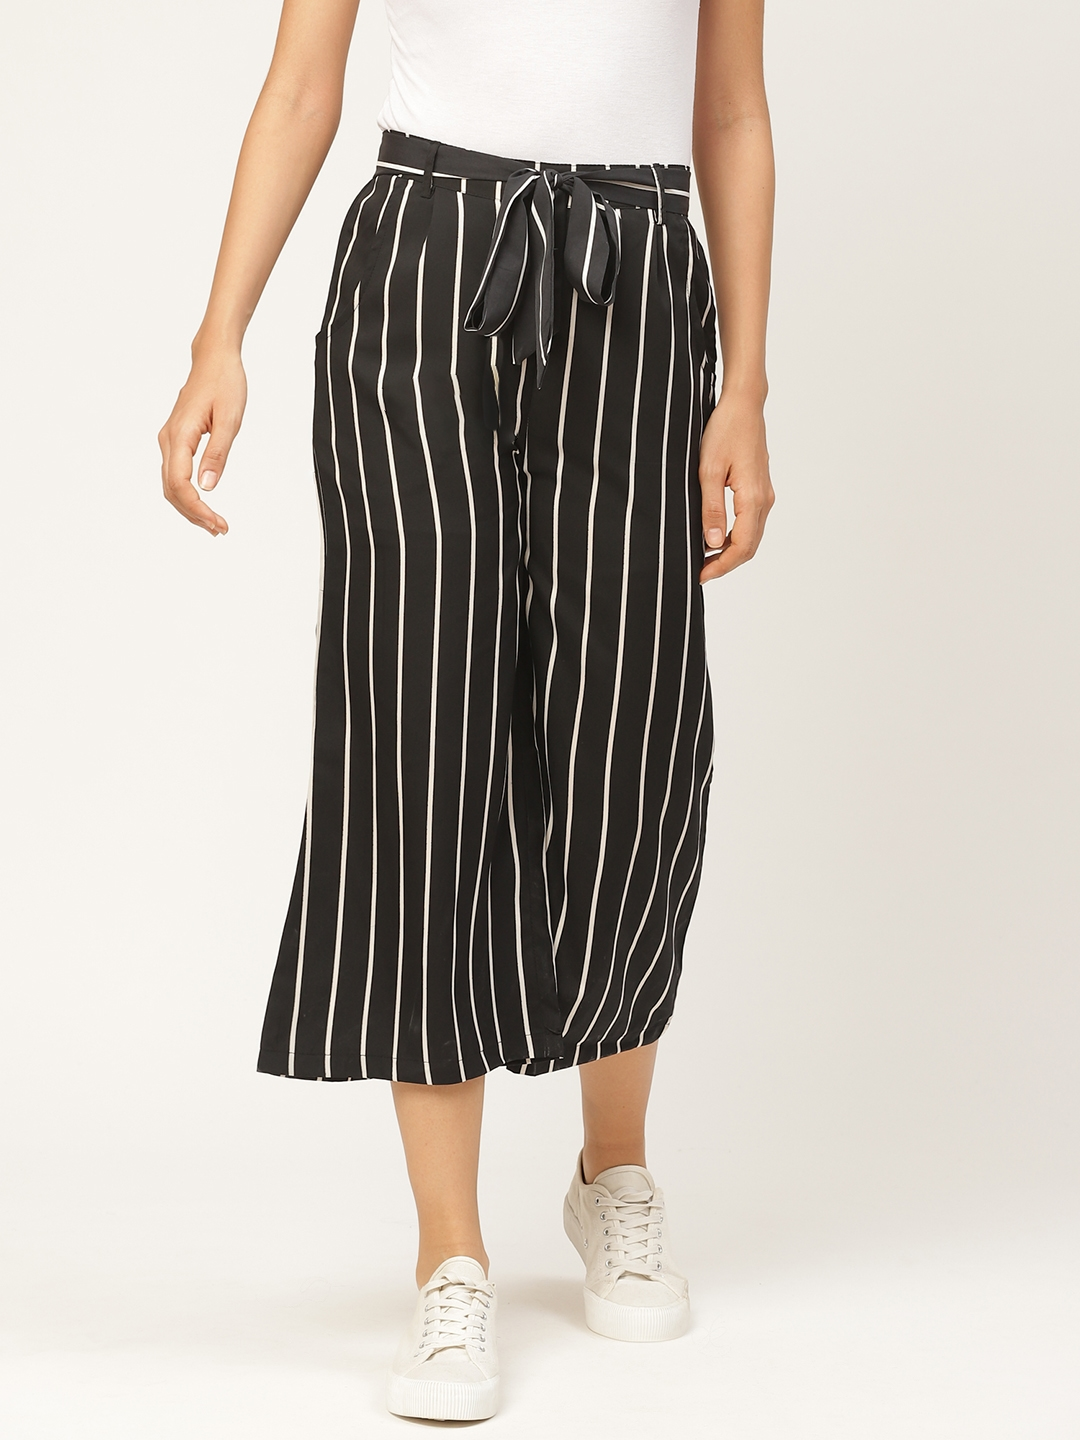 WISSTLER Women Black   White Relaxed Flared Striped Cropped Parallel Trousers